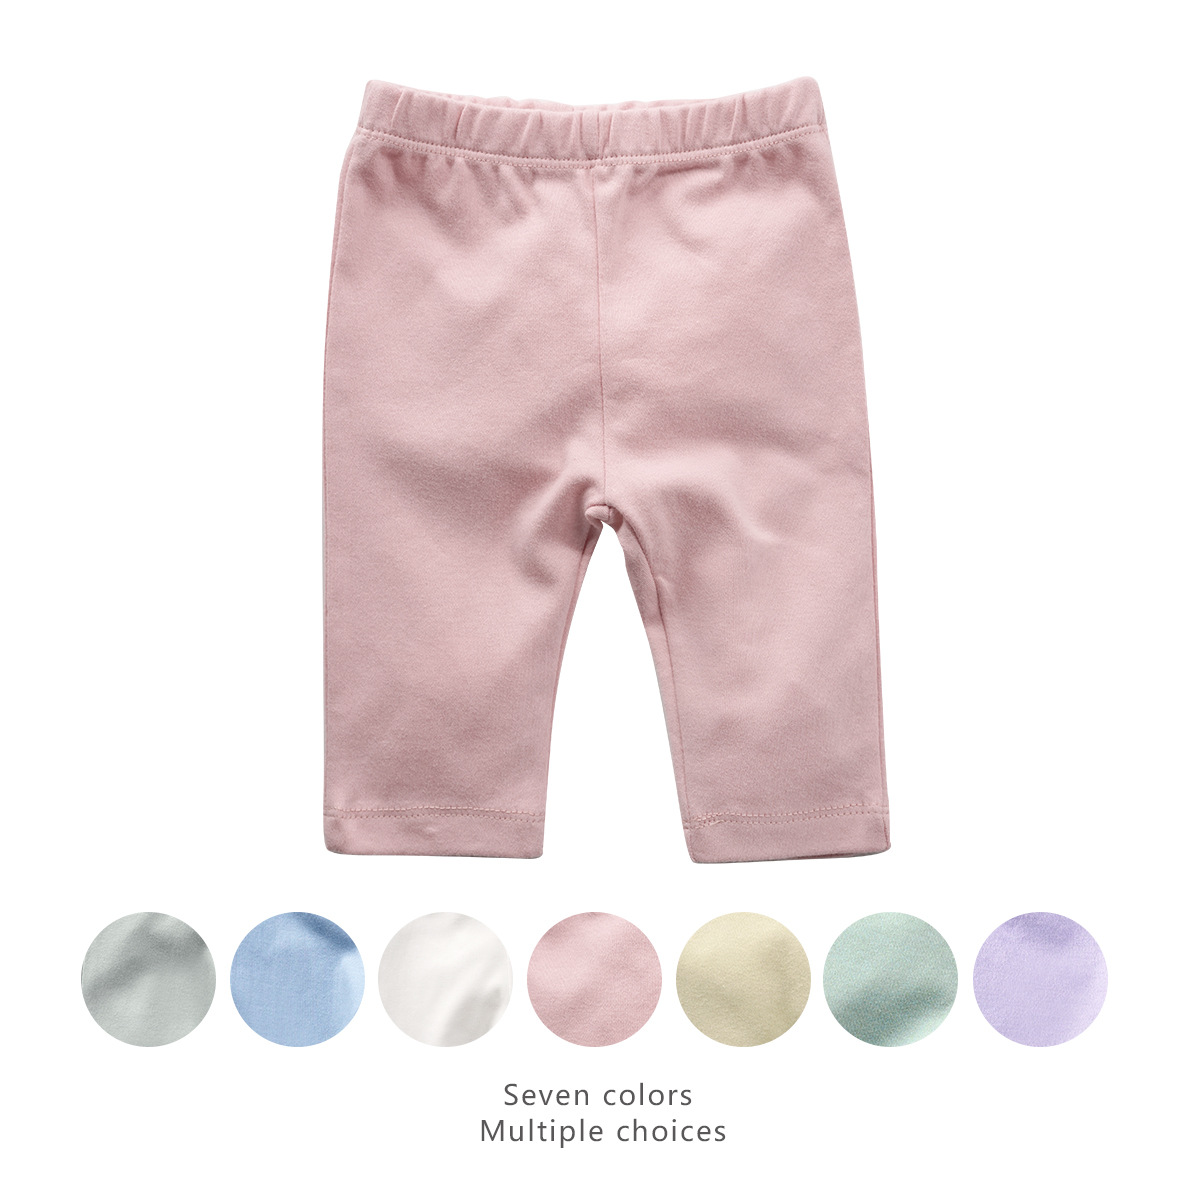 Newborn Baby Pants 100% Cotton Baby Girl Clothes Children Toddler Girl Floral Pants Boys And Girls Spring Clothing